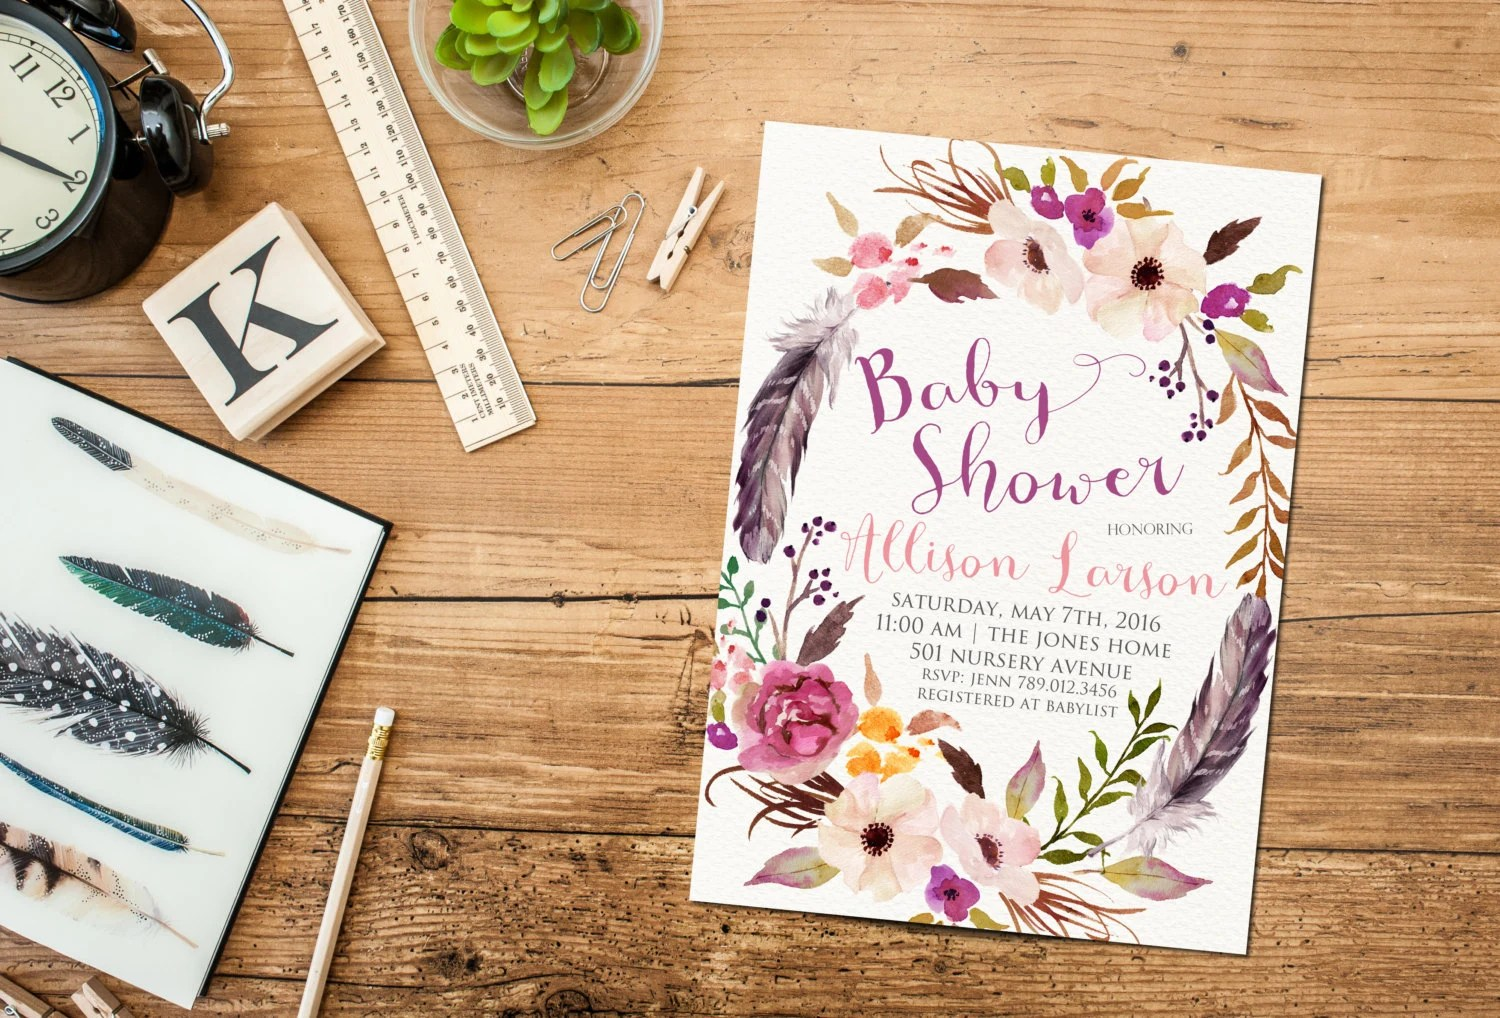 Baby Shower Invitations Not Knowing Gender